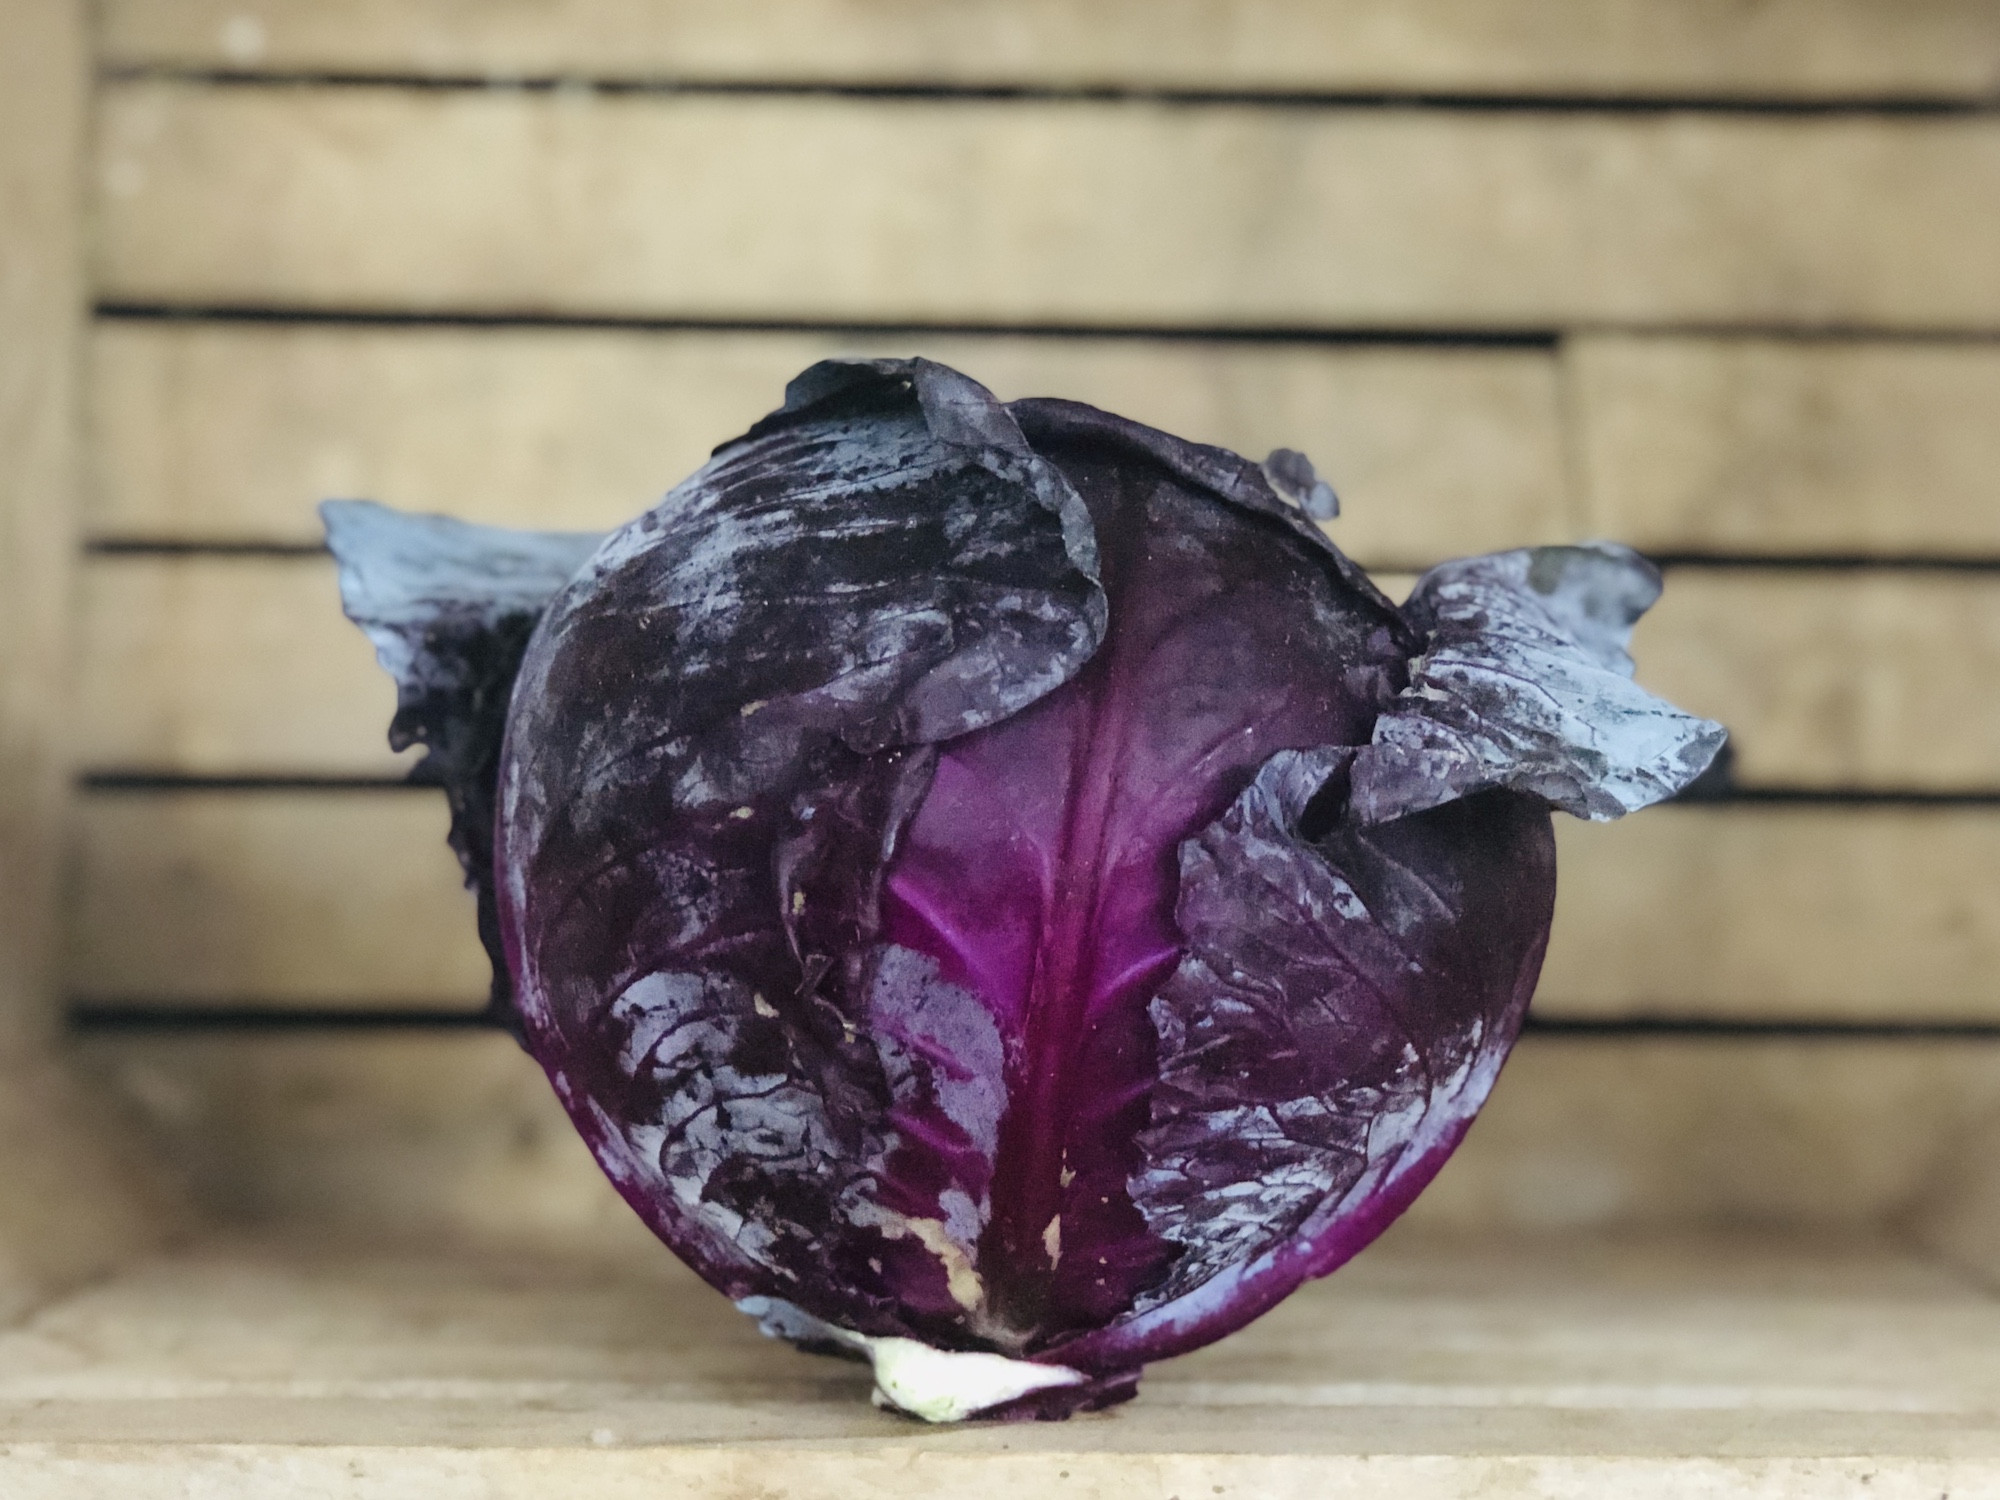 Red Cabbage, 1 head